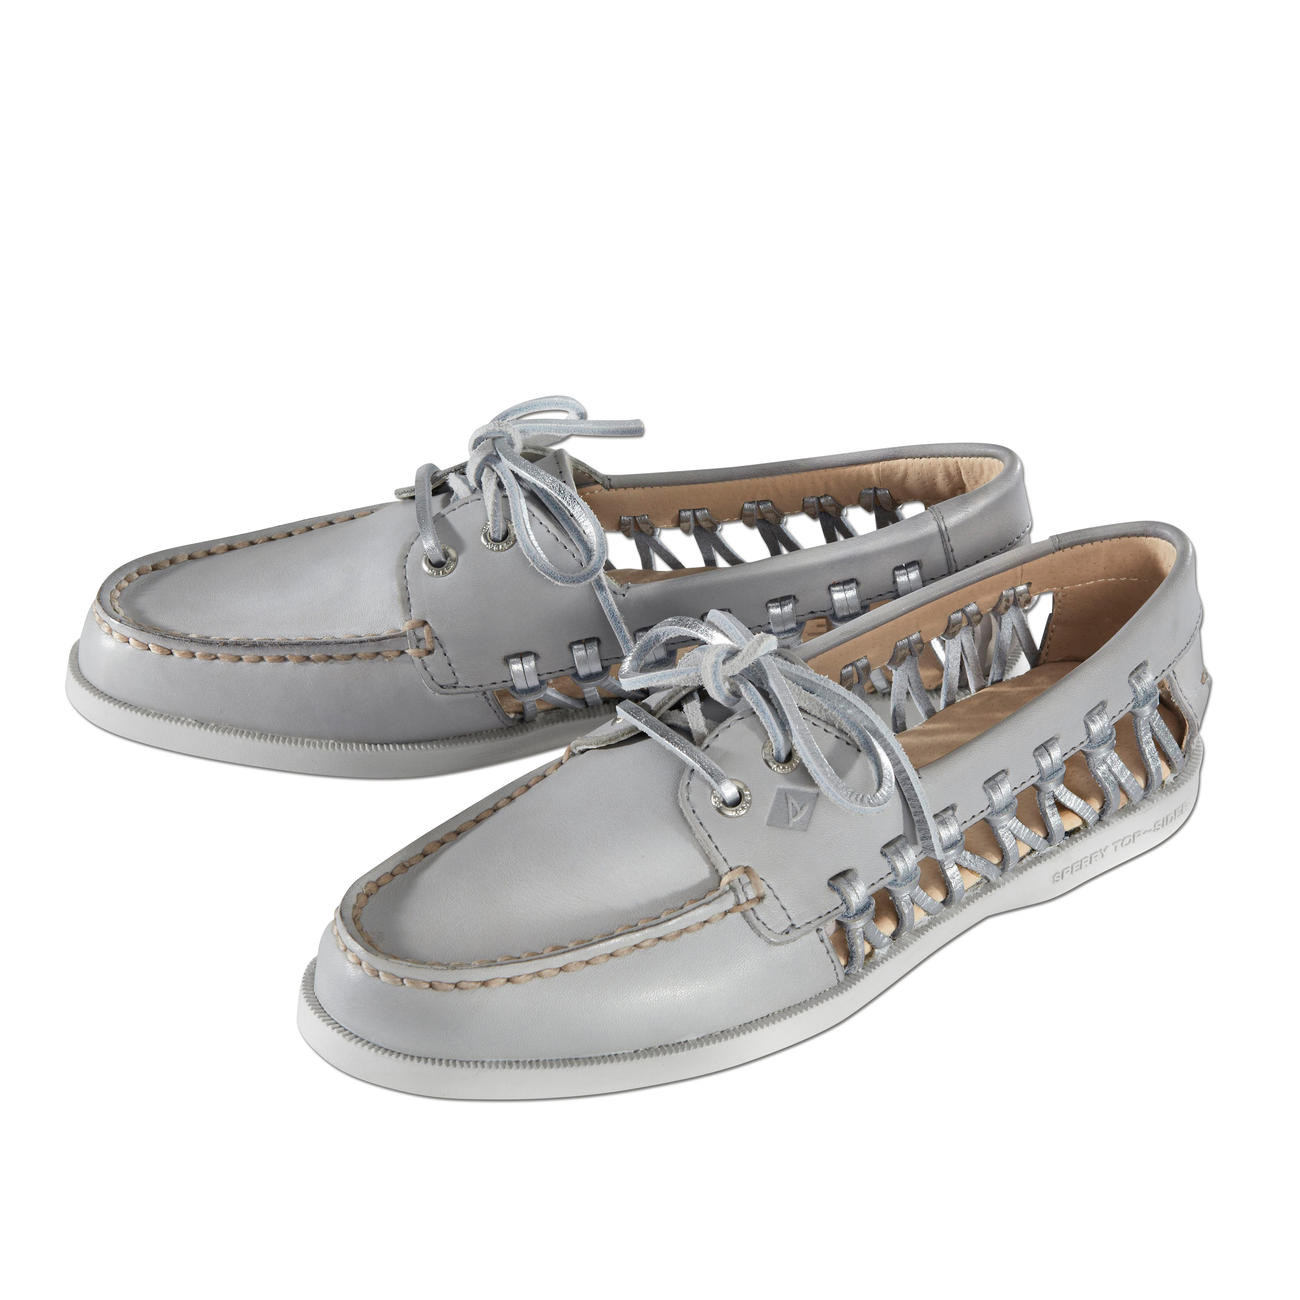 31a1a5fd6ae Sperry Top-Sider 'Lady' - Luchtig open opzij. 224 g licht.